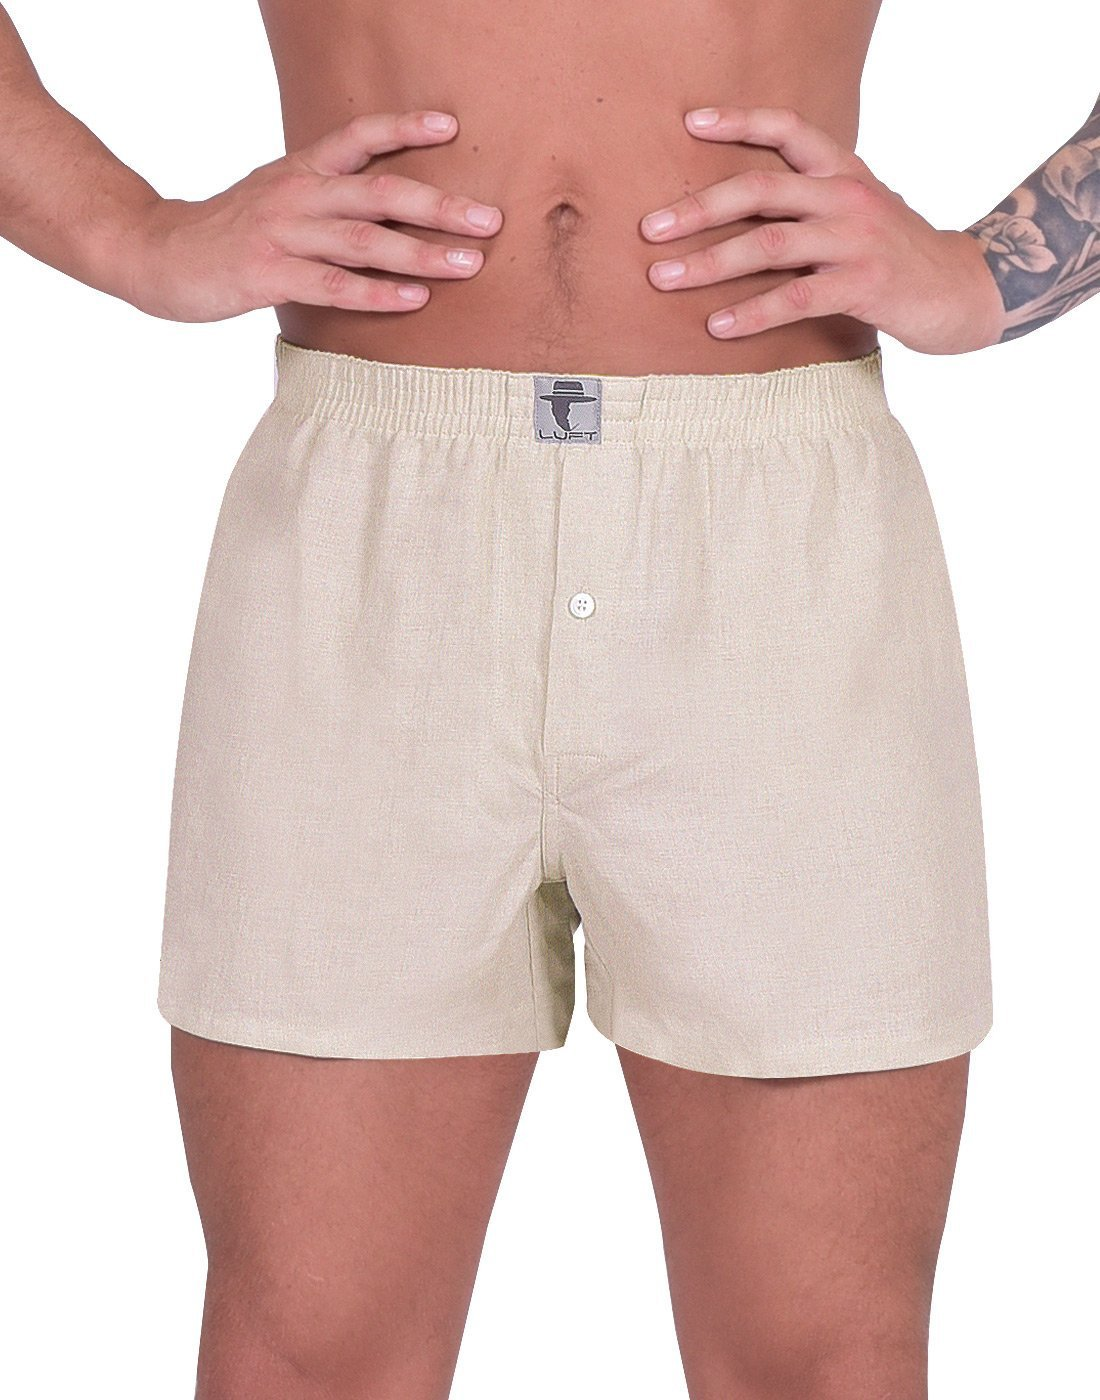 Luft Mens Boys Man Plus Size Linen Soft Stretch Comfortable Elastic Waistband Breathable Low Rise Fit Classic Functional Seamless Trunks Briefs Underpants Underwear Boxer Shorts, Light Brown Beige XL